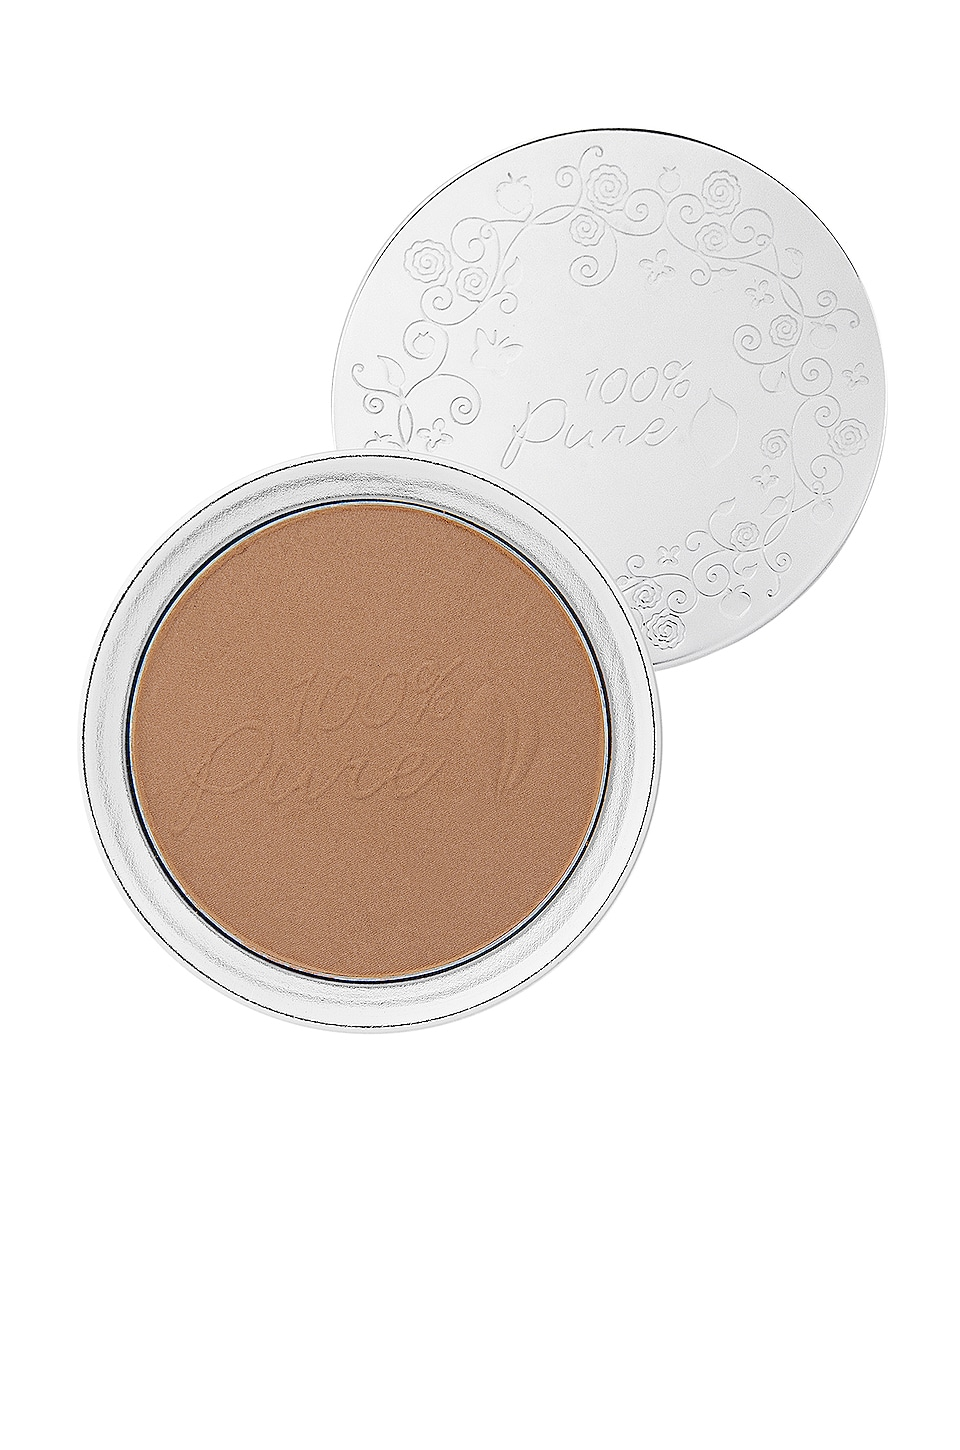 100% Pure Healthy Face Powder Foundation w/Sun Protection in Mousse